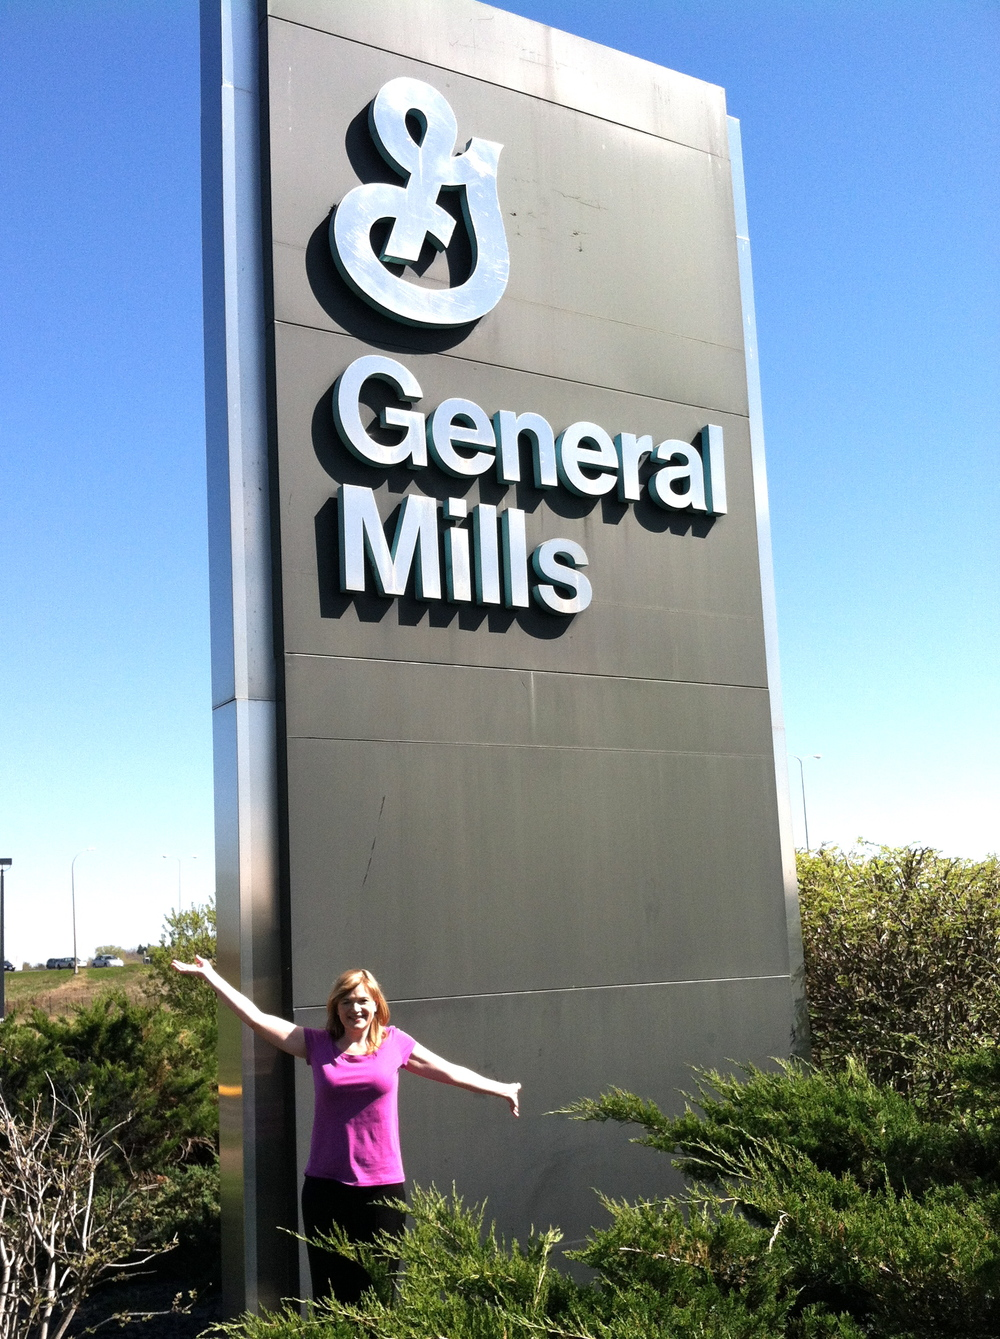 We had a great visit to General Mills in MN after the Bake-Off!